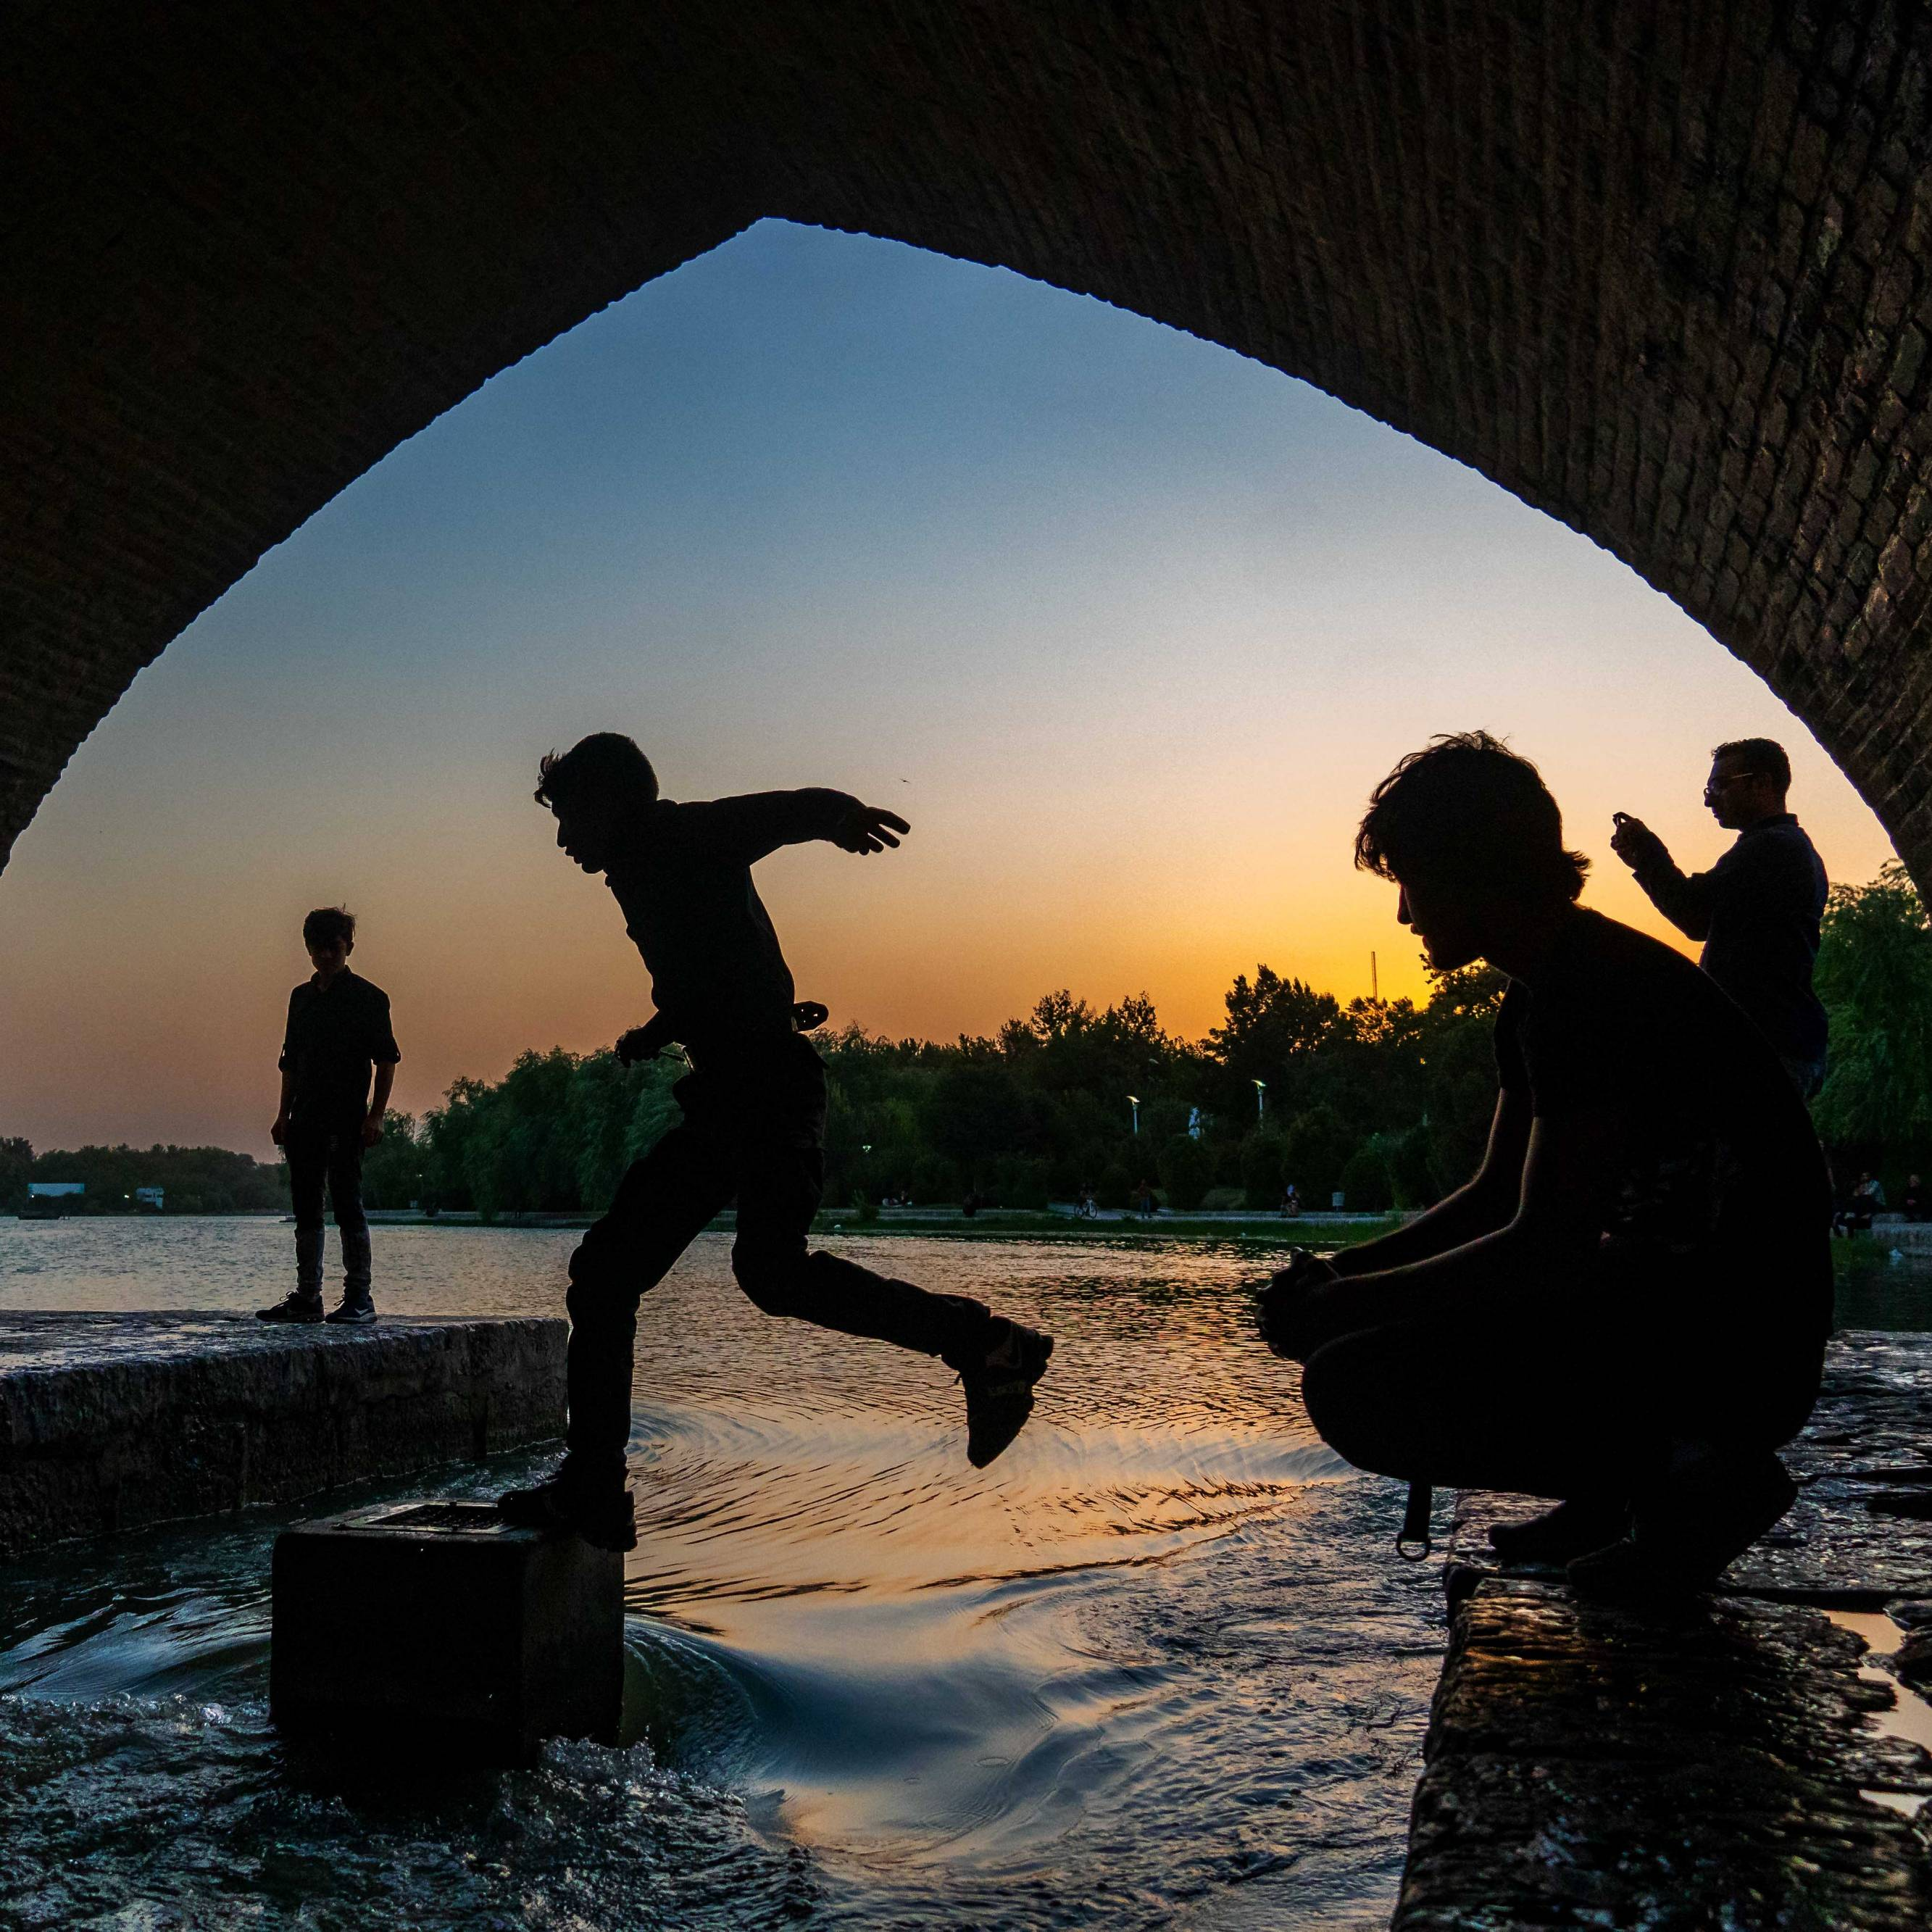 Boys jumping over Zajandeh Rud river